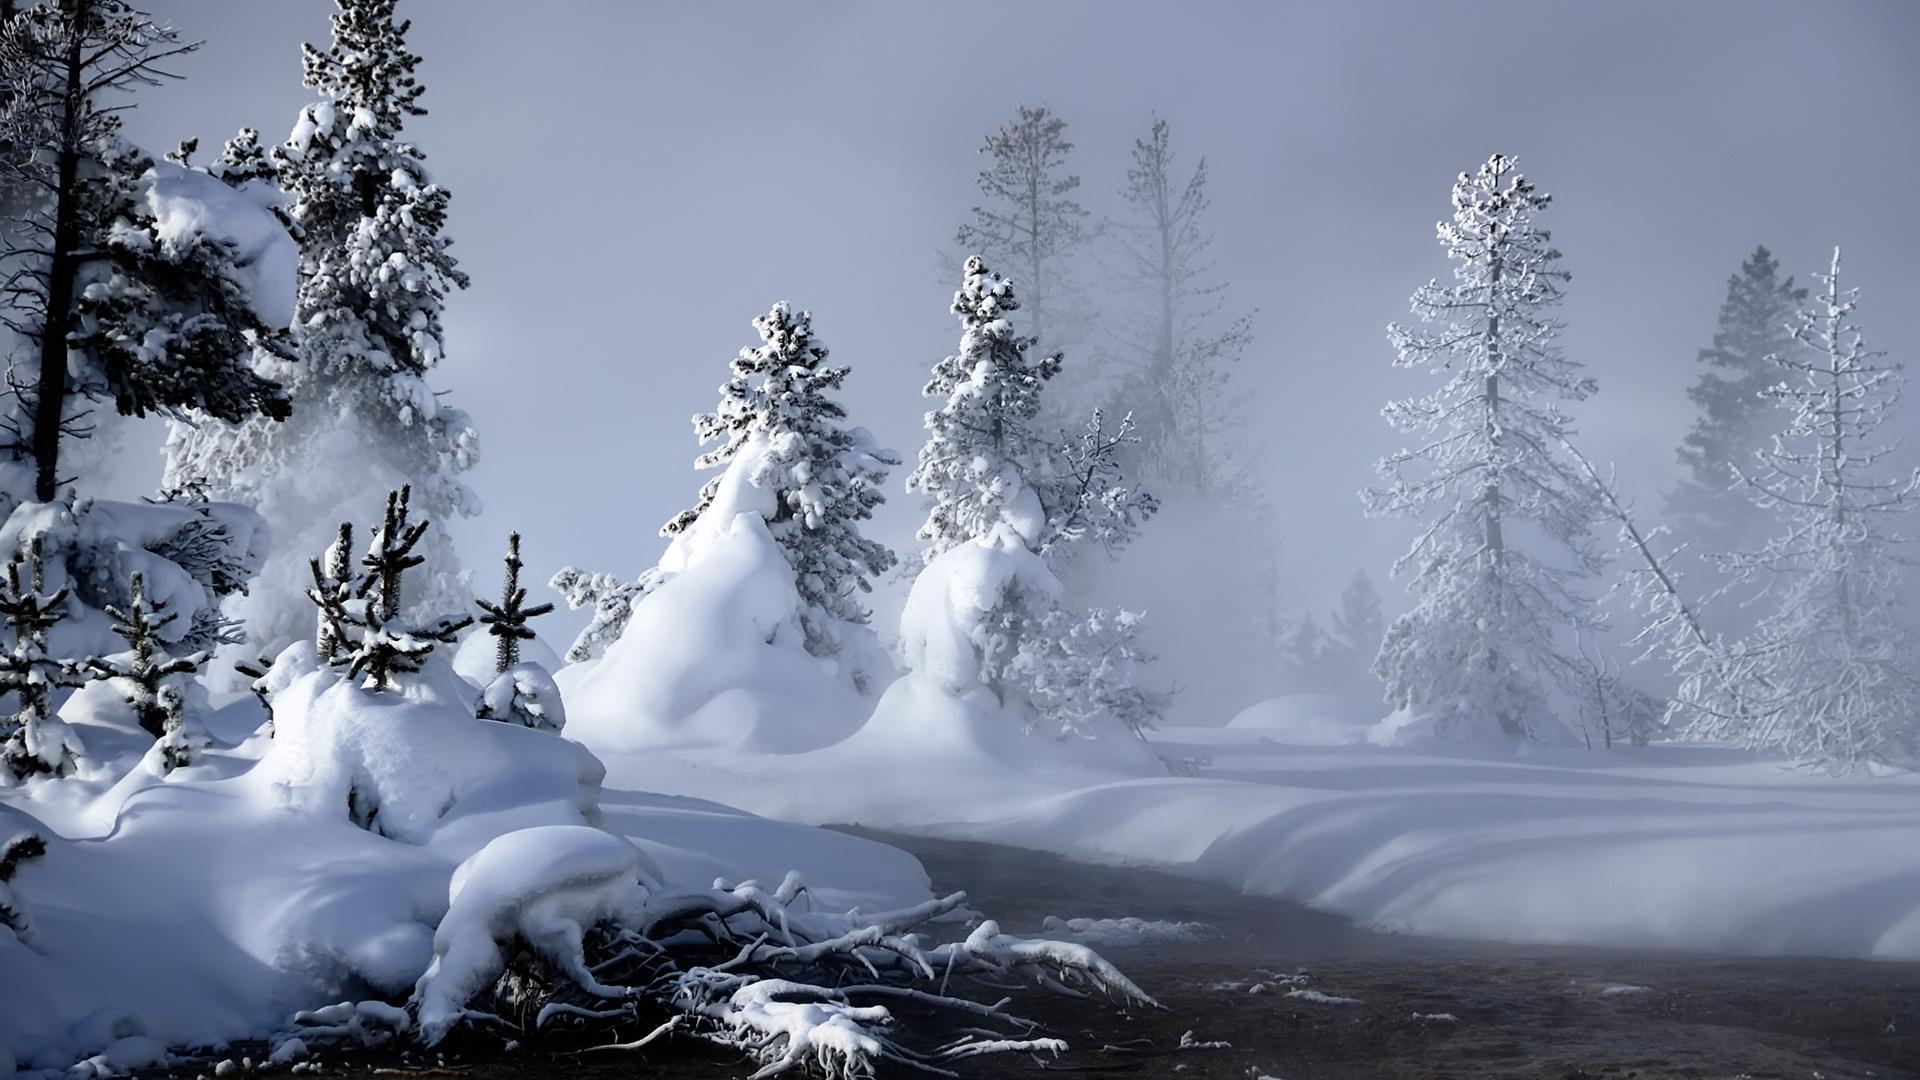 Amazing Winter Season Wallpaper 15646